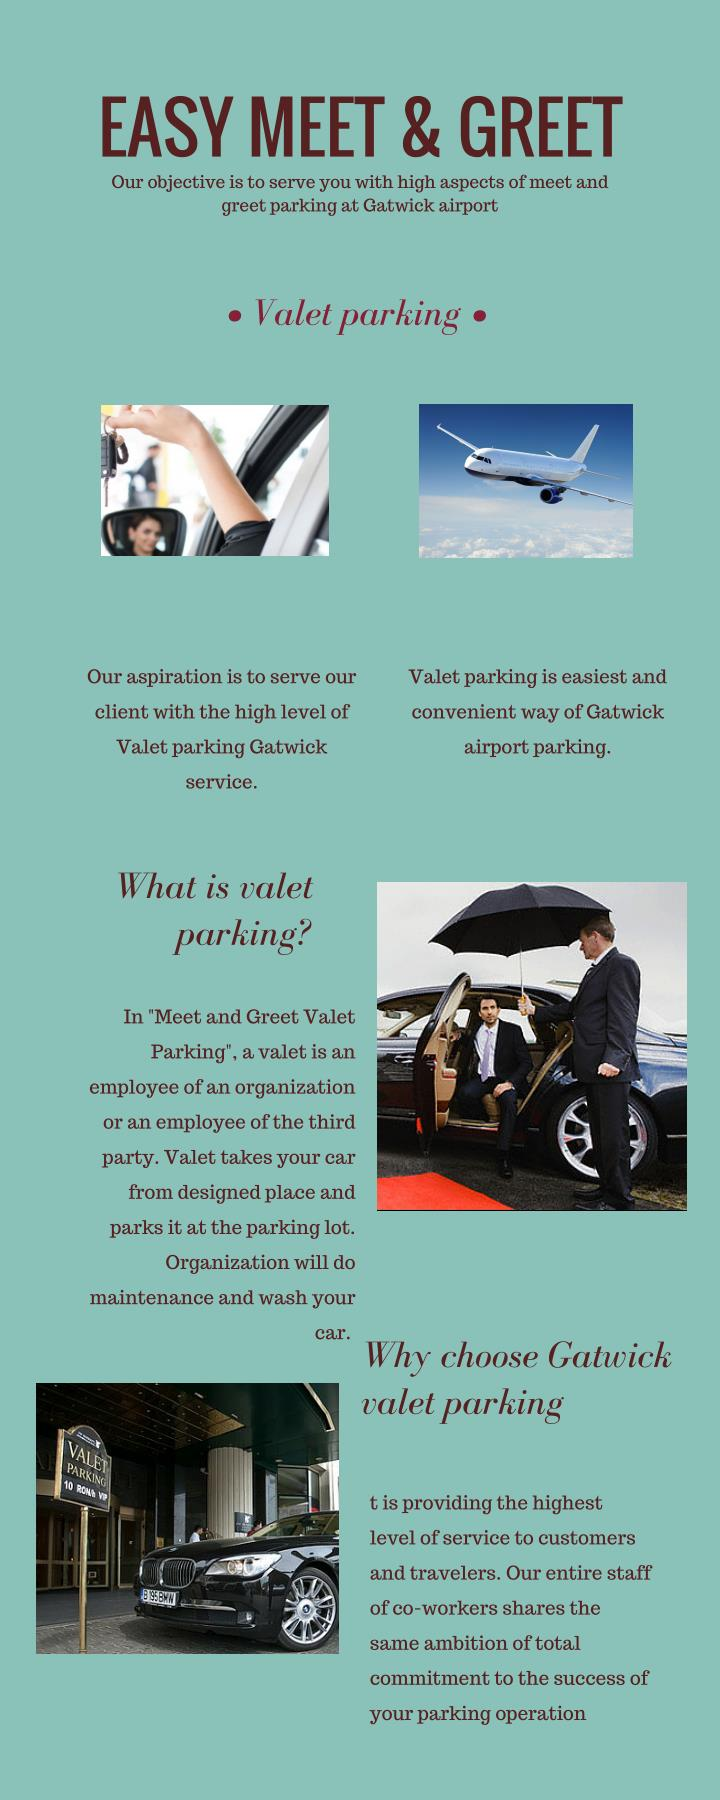 Ppt easy meet and greet powerpoint presentation id7192972 our objective is to serve you with high aspects of meet and greet parking at gatwick airport kristyandbryce Choice Image